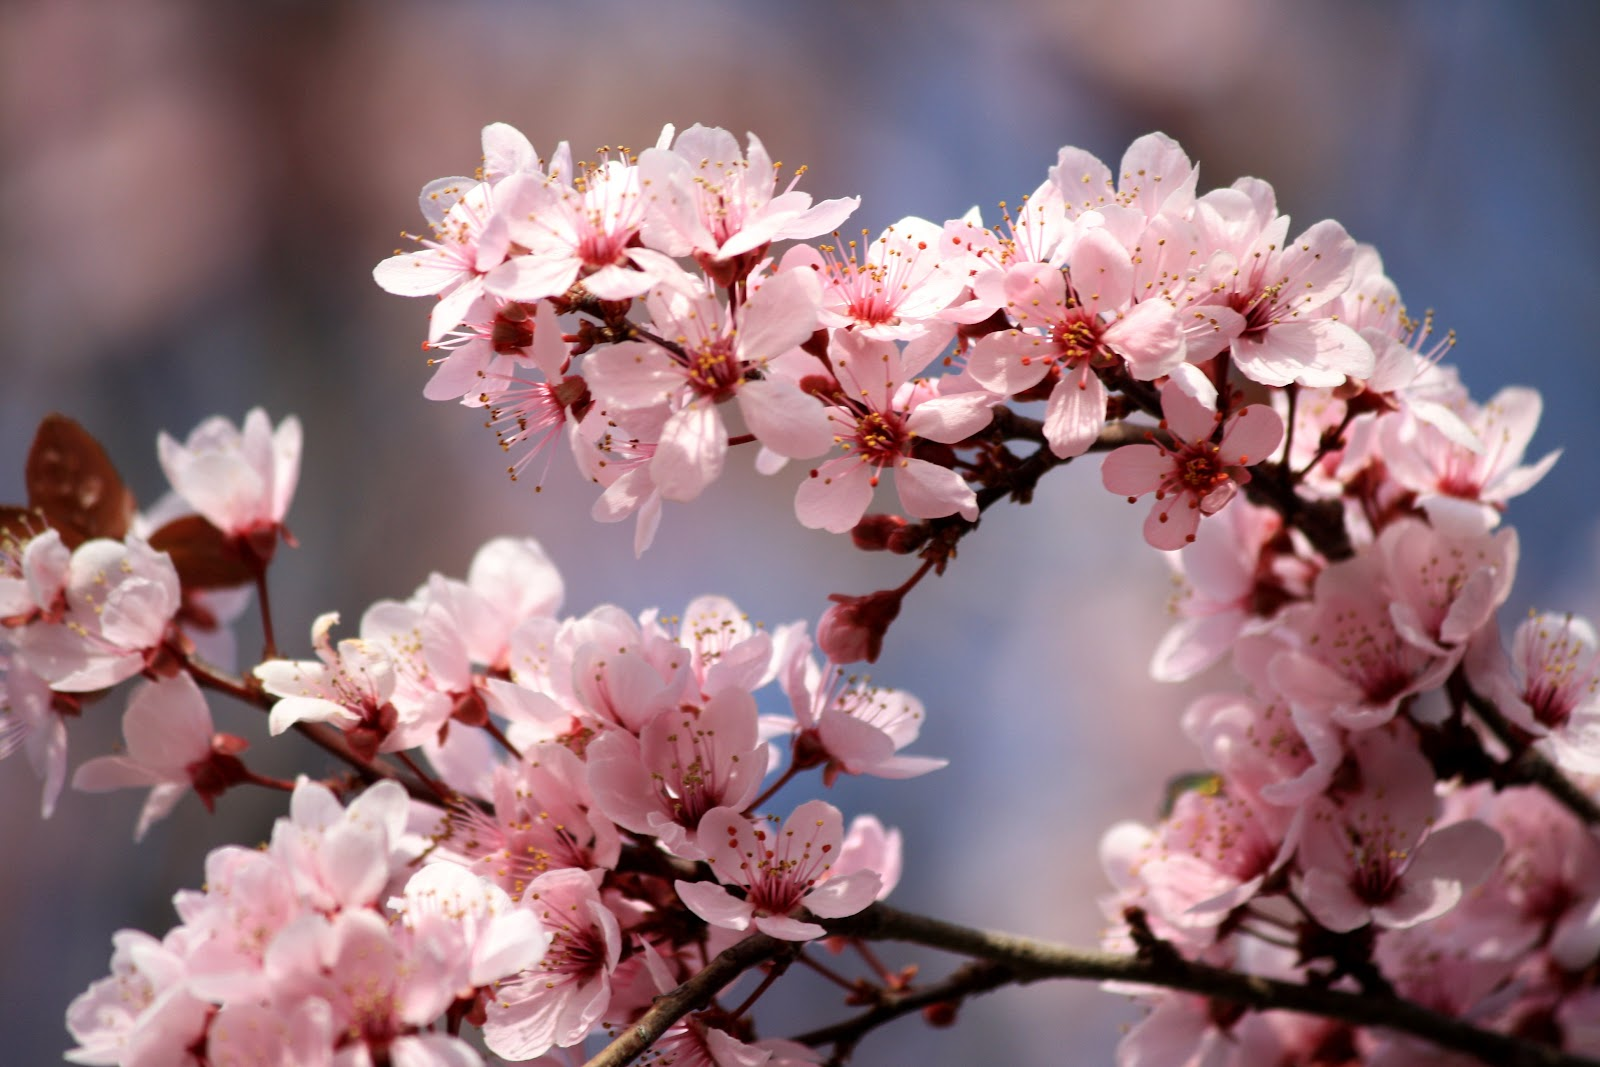 https://upload.wikimedia.org/wikipedia/commons/4/47/Pink_Plum_Blossoms.jpg